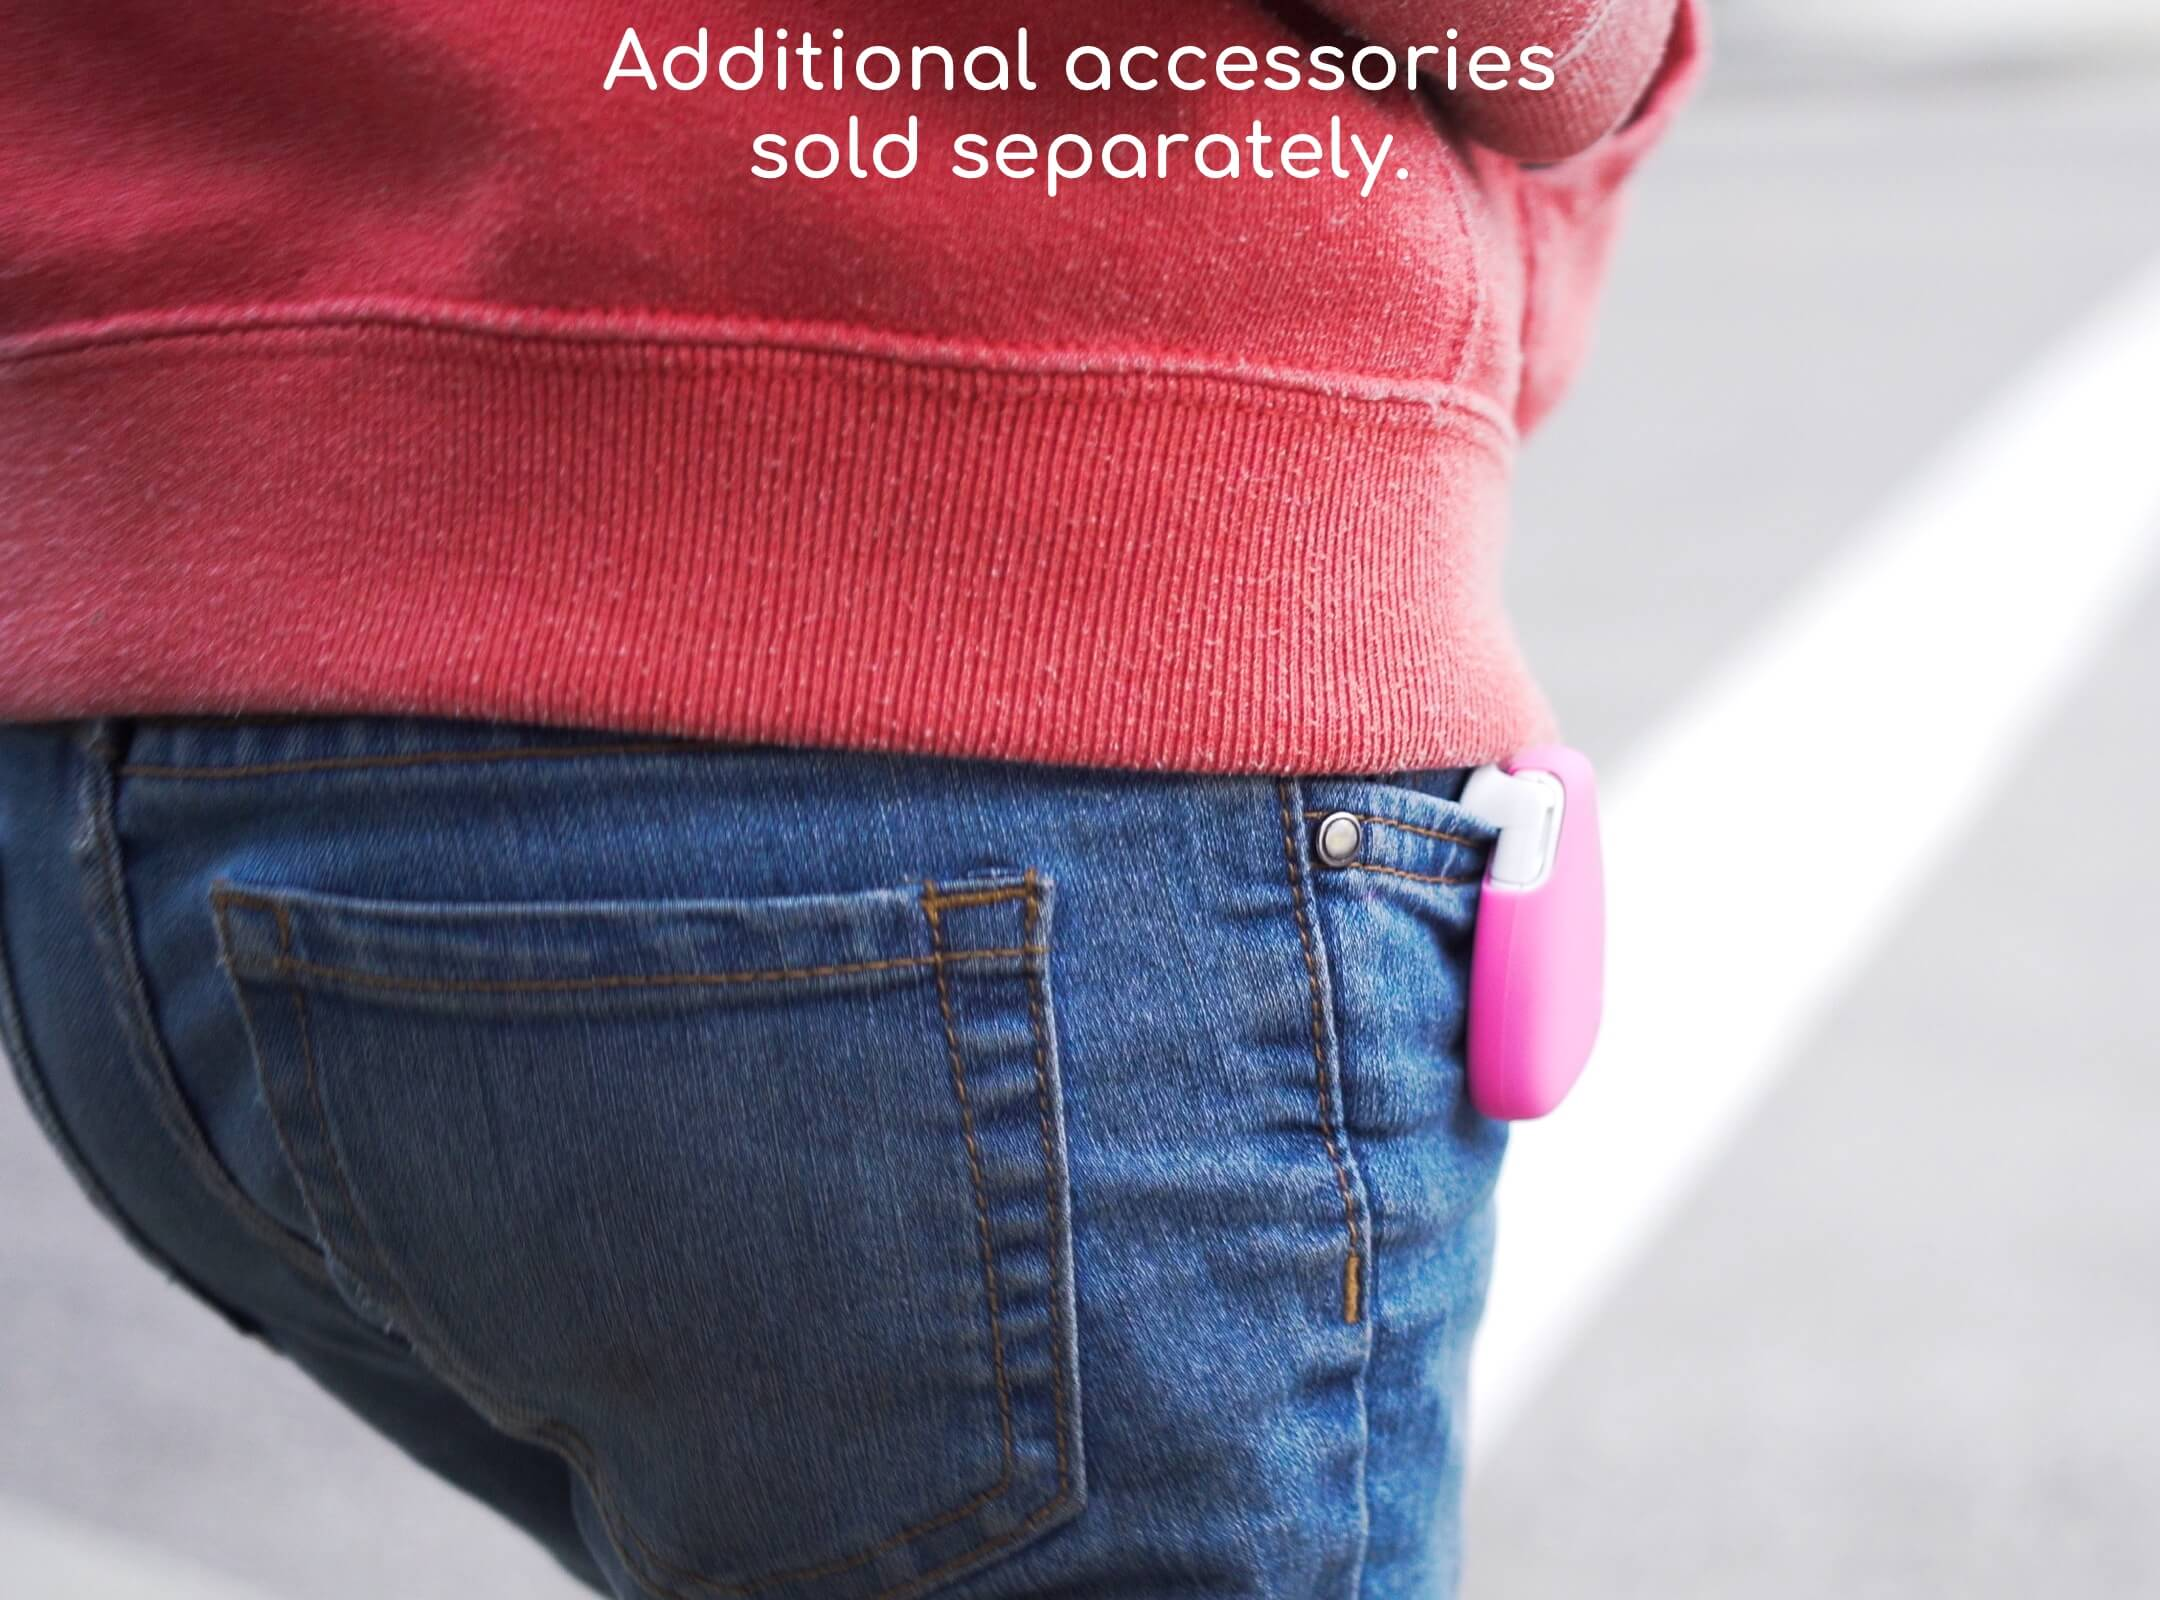 Additional accessories available